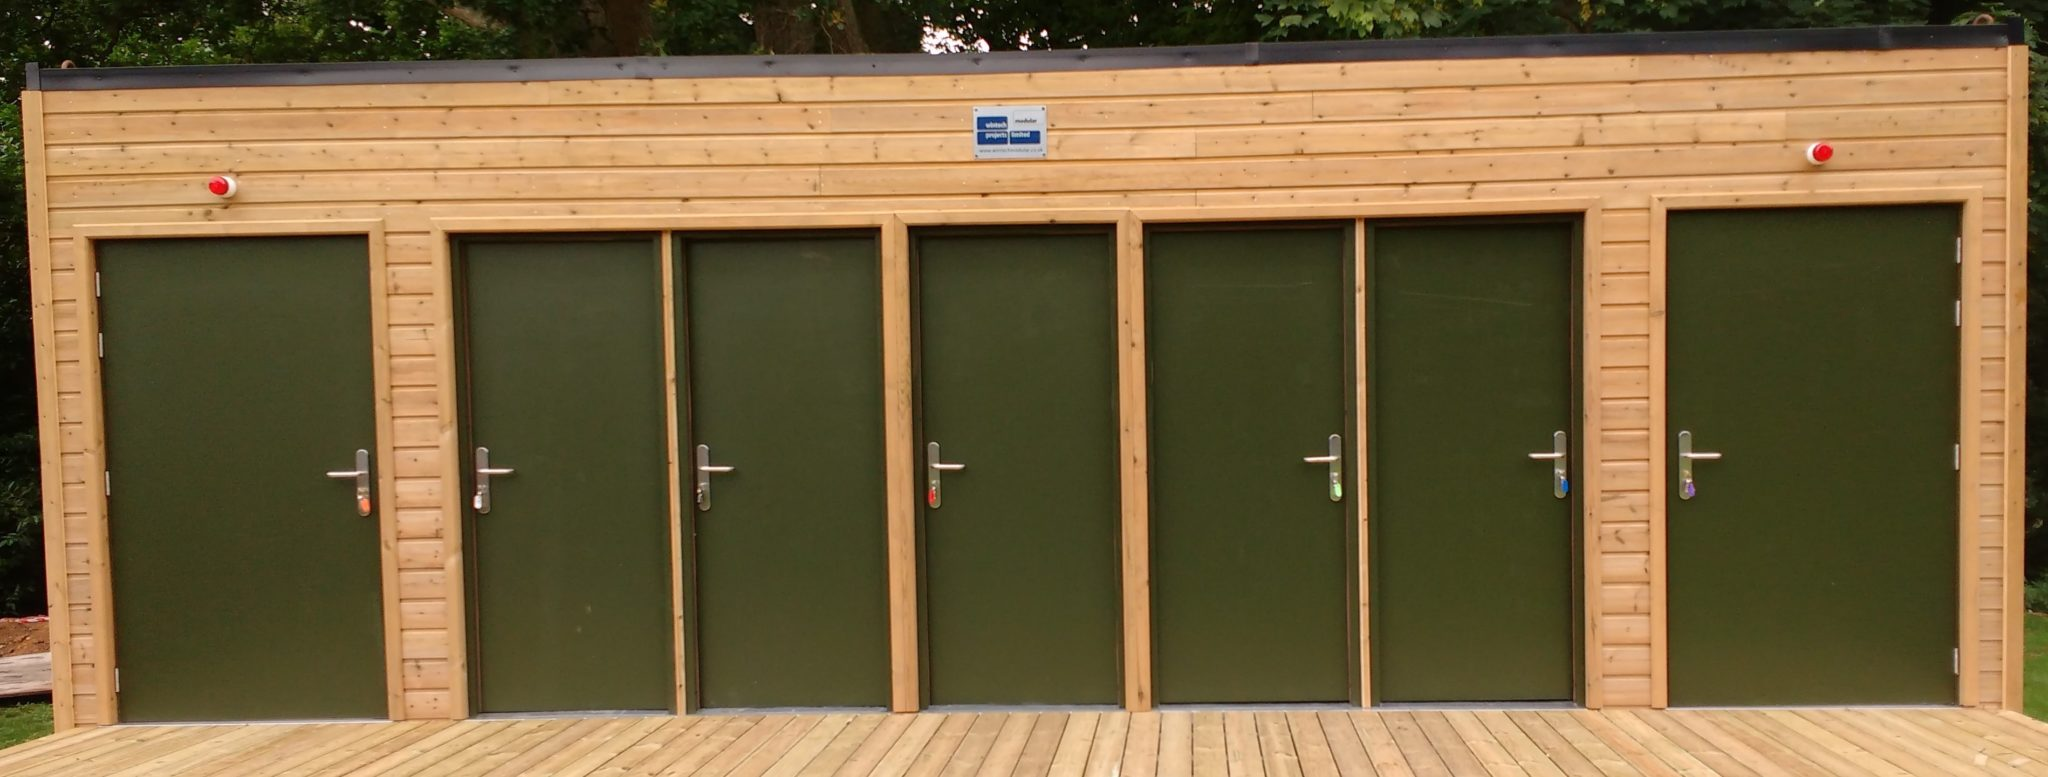 Fitted portable washroom modular building